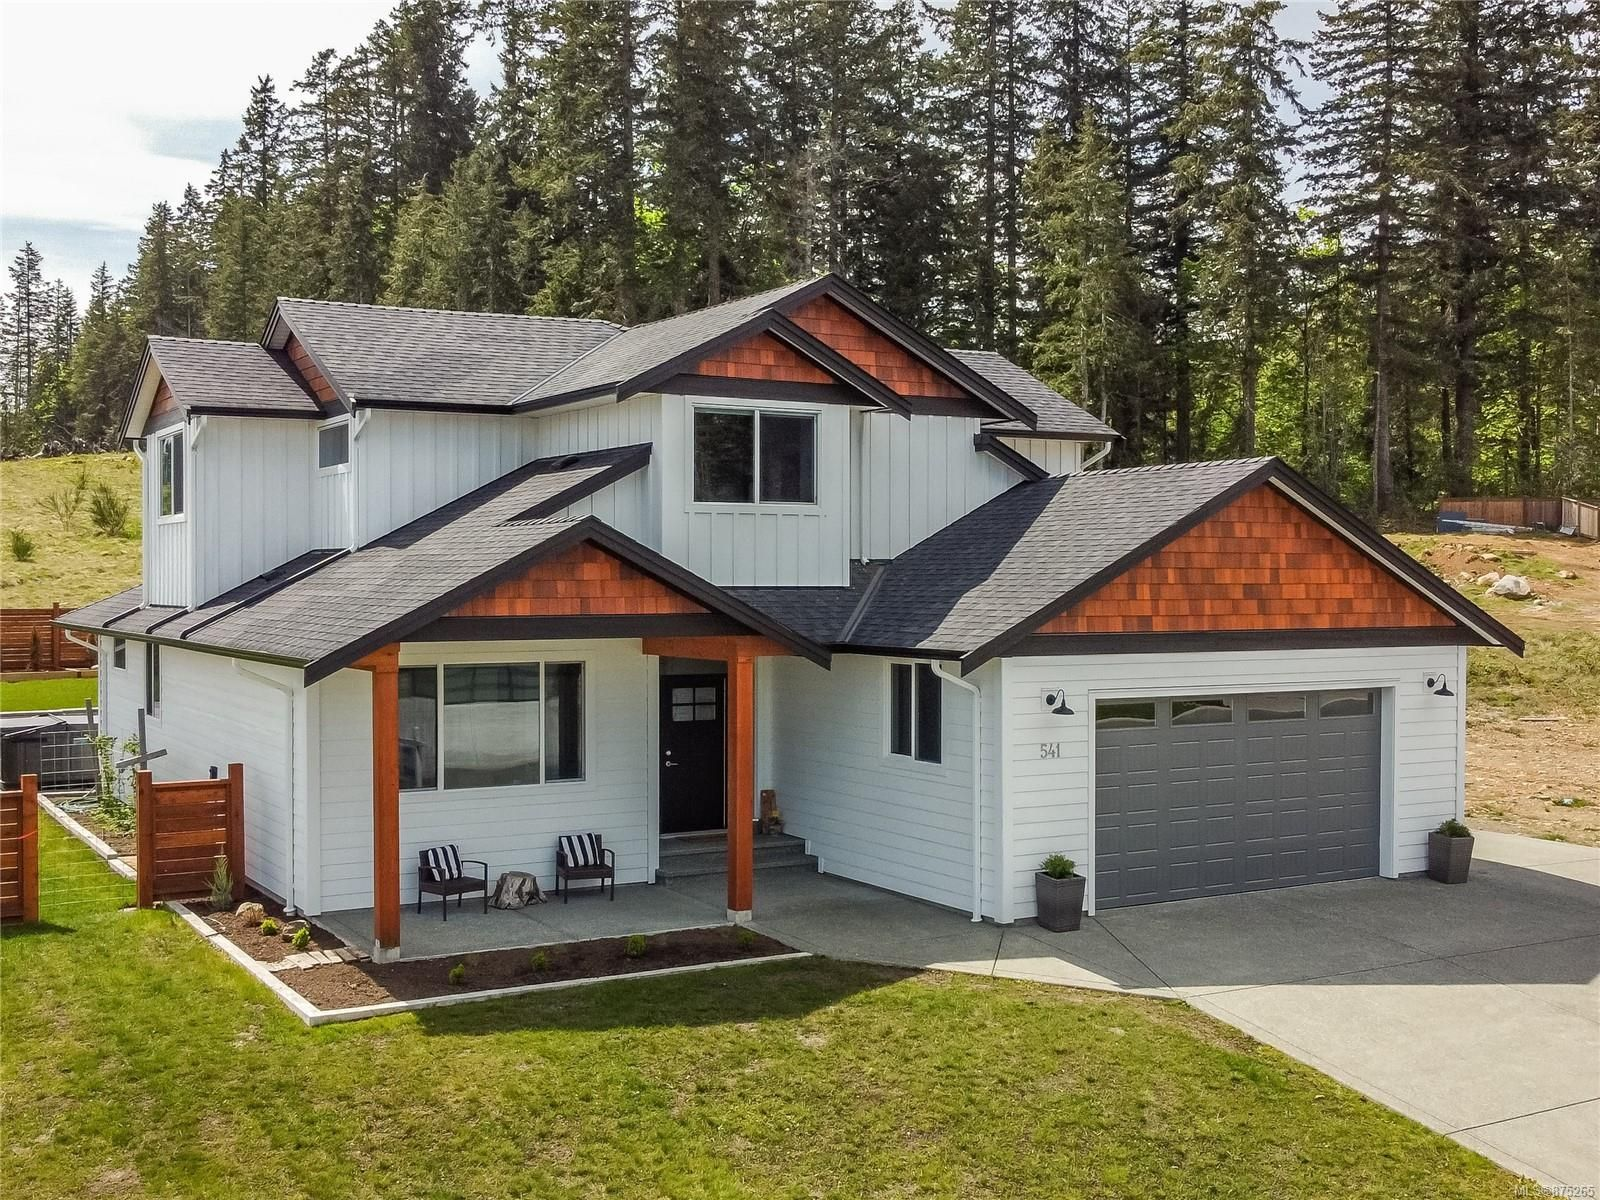 Main Photo: 541 Nebraska Dr in : CR Willow Point House for sale (Campbell River)  : MLS®# 875265